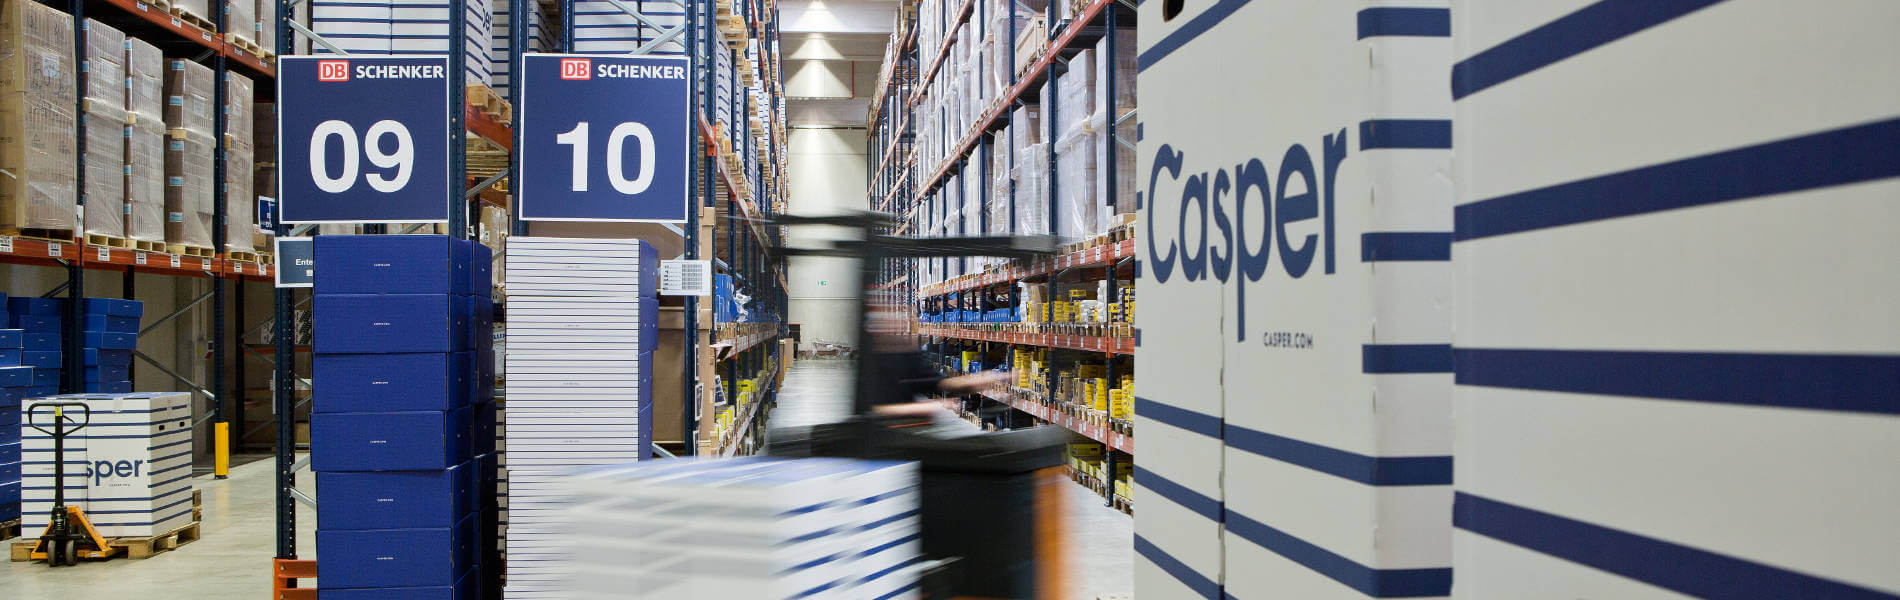 E-Commerce: Starker Logistikpartner für Wachstumsstrategien